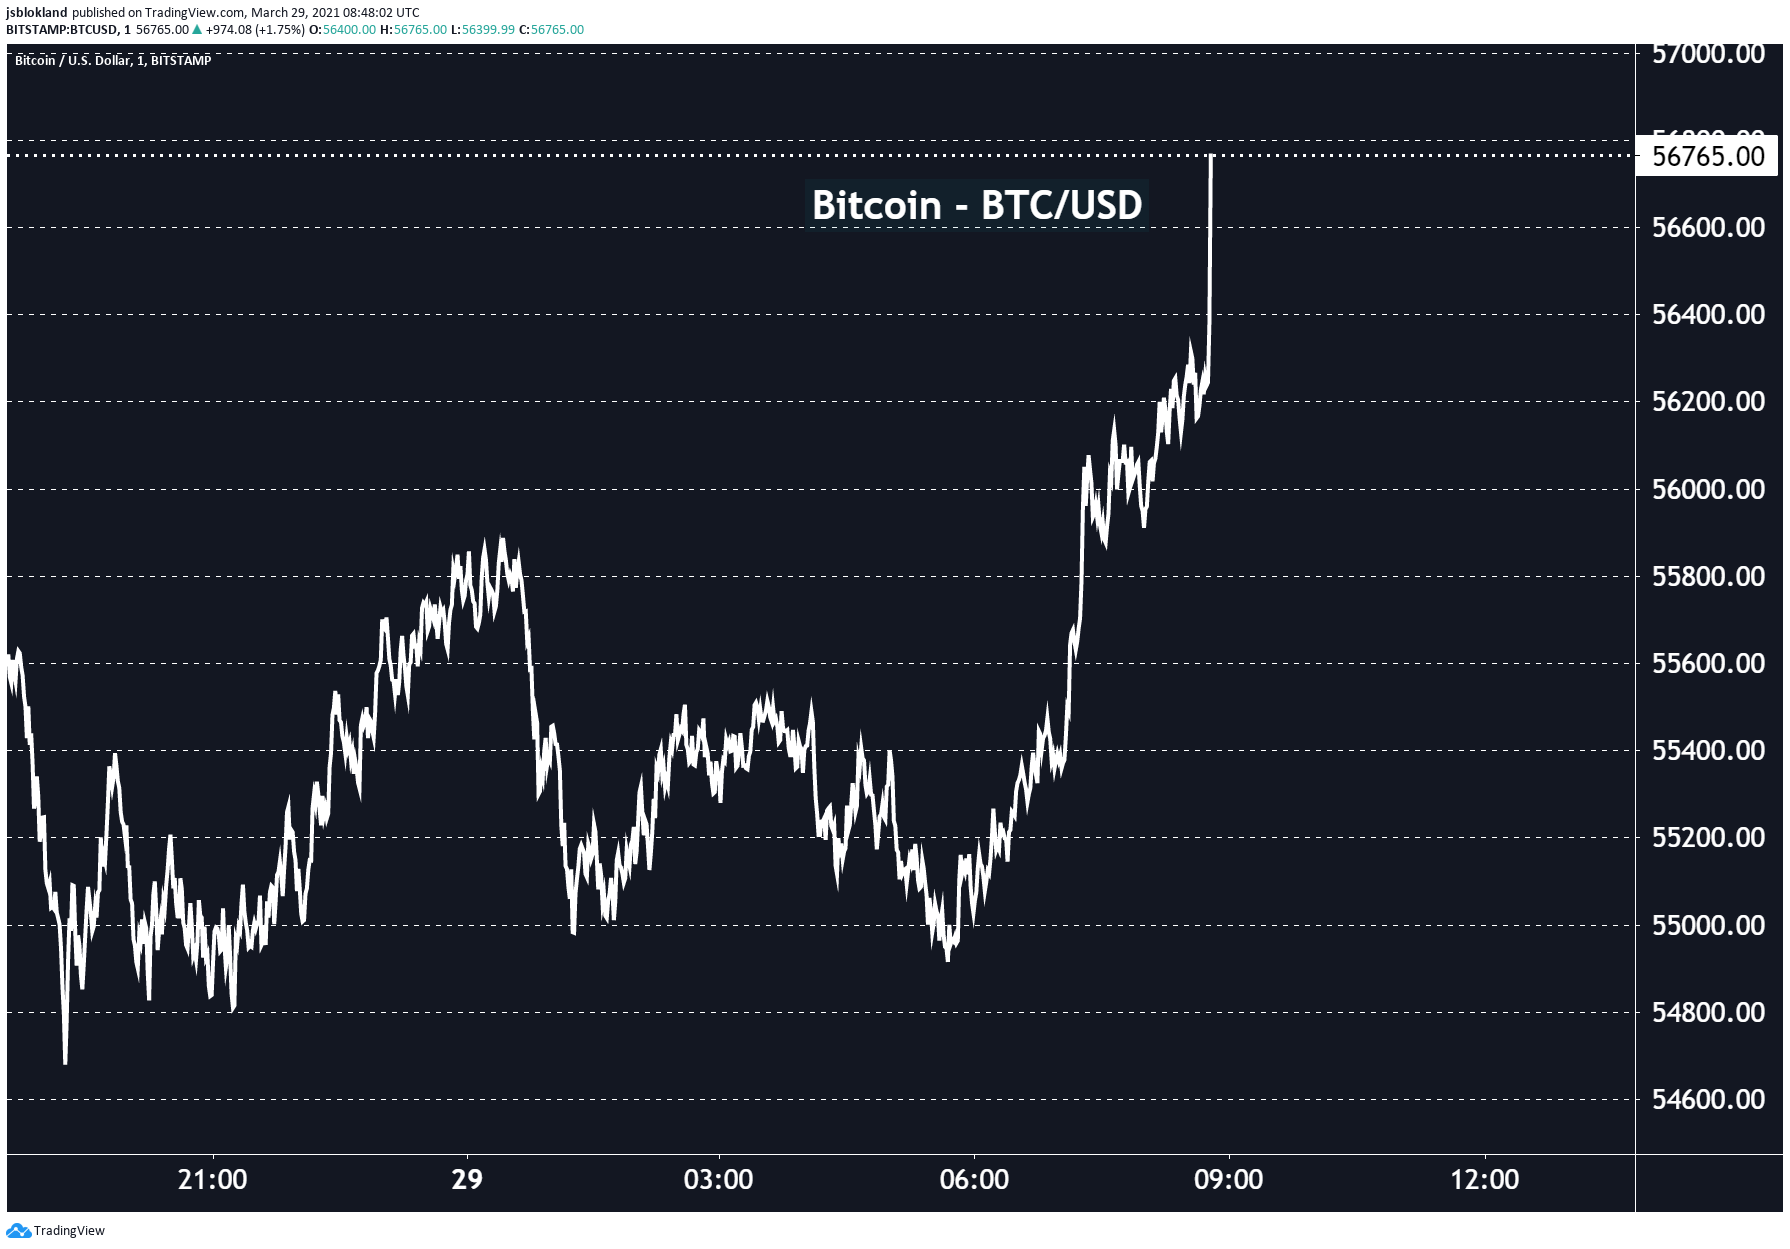 Bitcoin is back up this morning